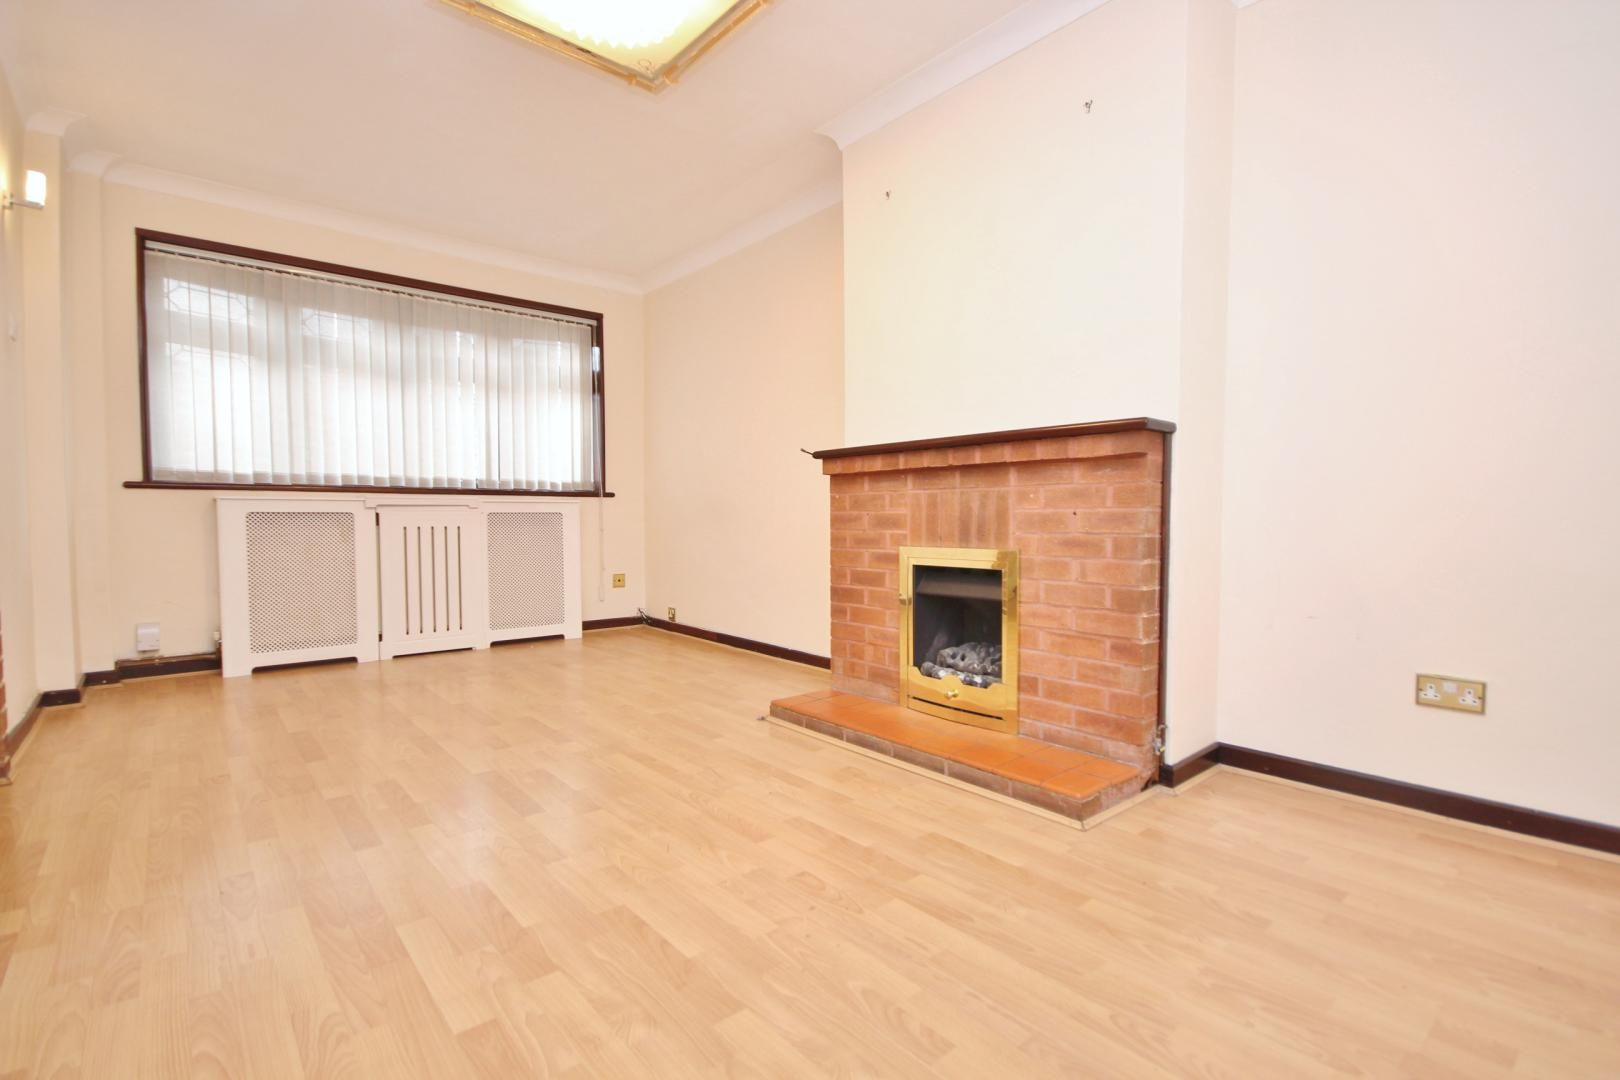 3 bed house to rent in Nelson Road - Property Image 1